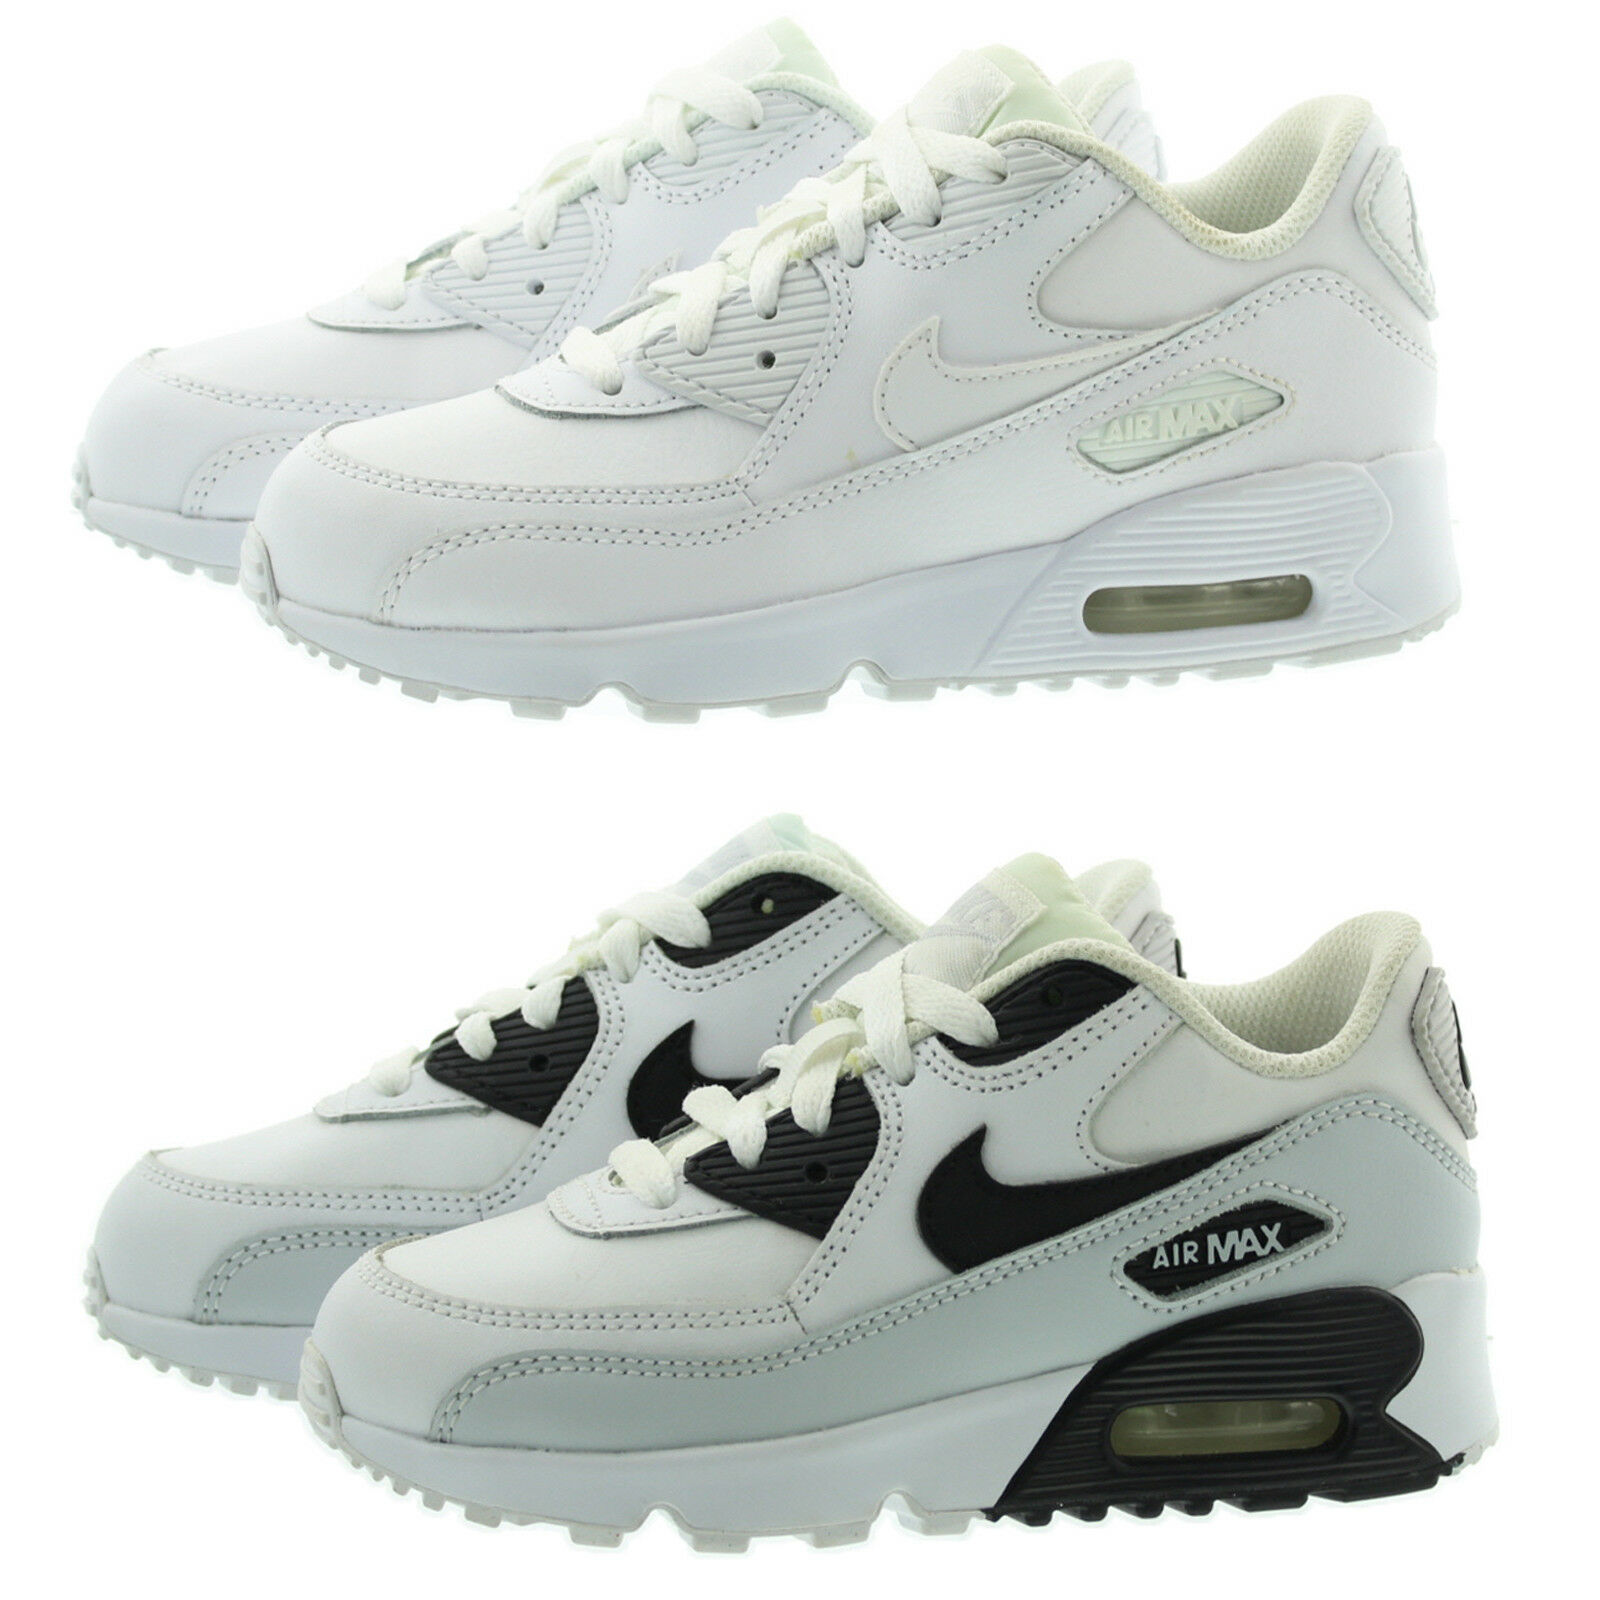 58b3b569021bf8 Nike Air Max 90 Ltr Little Kids 833414-100 White Athletic Shoes Youth Size  13 for sale online